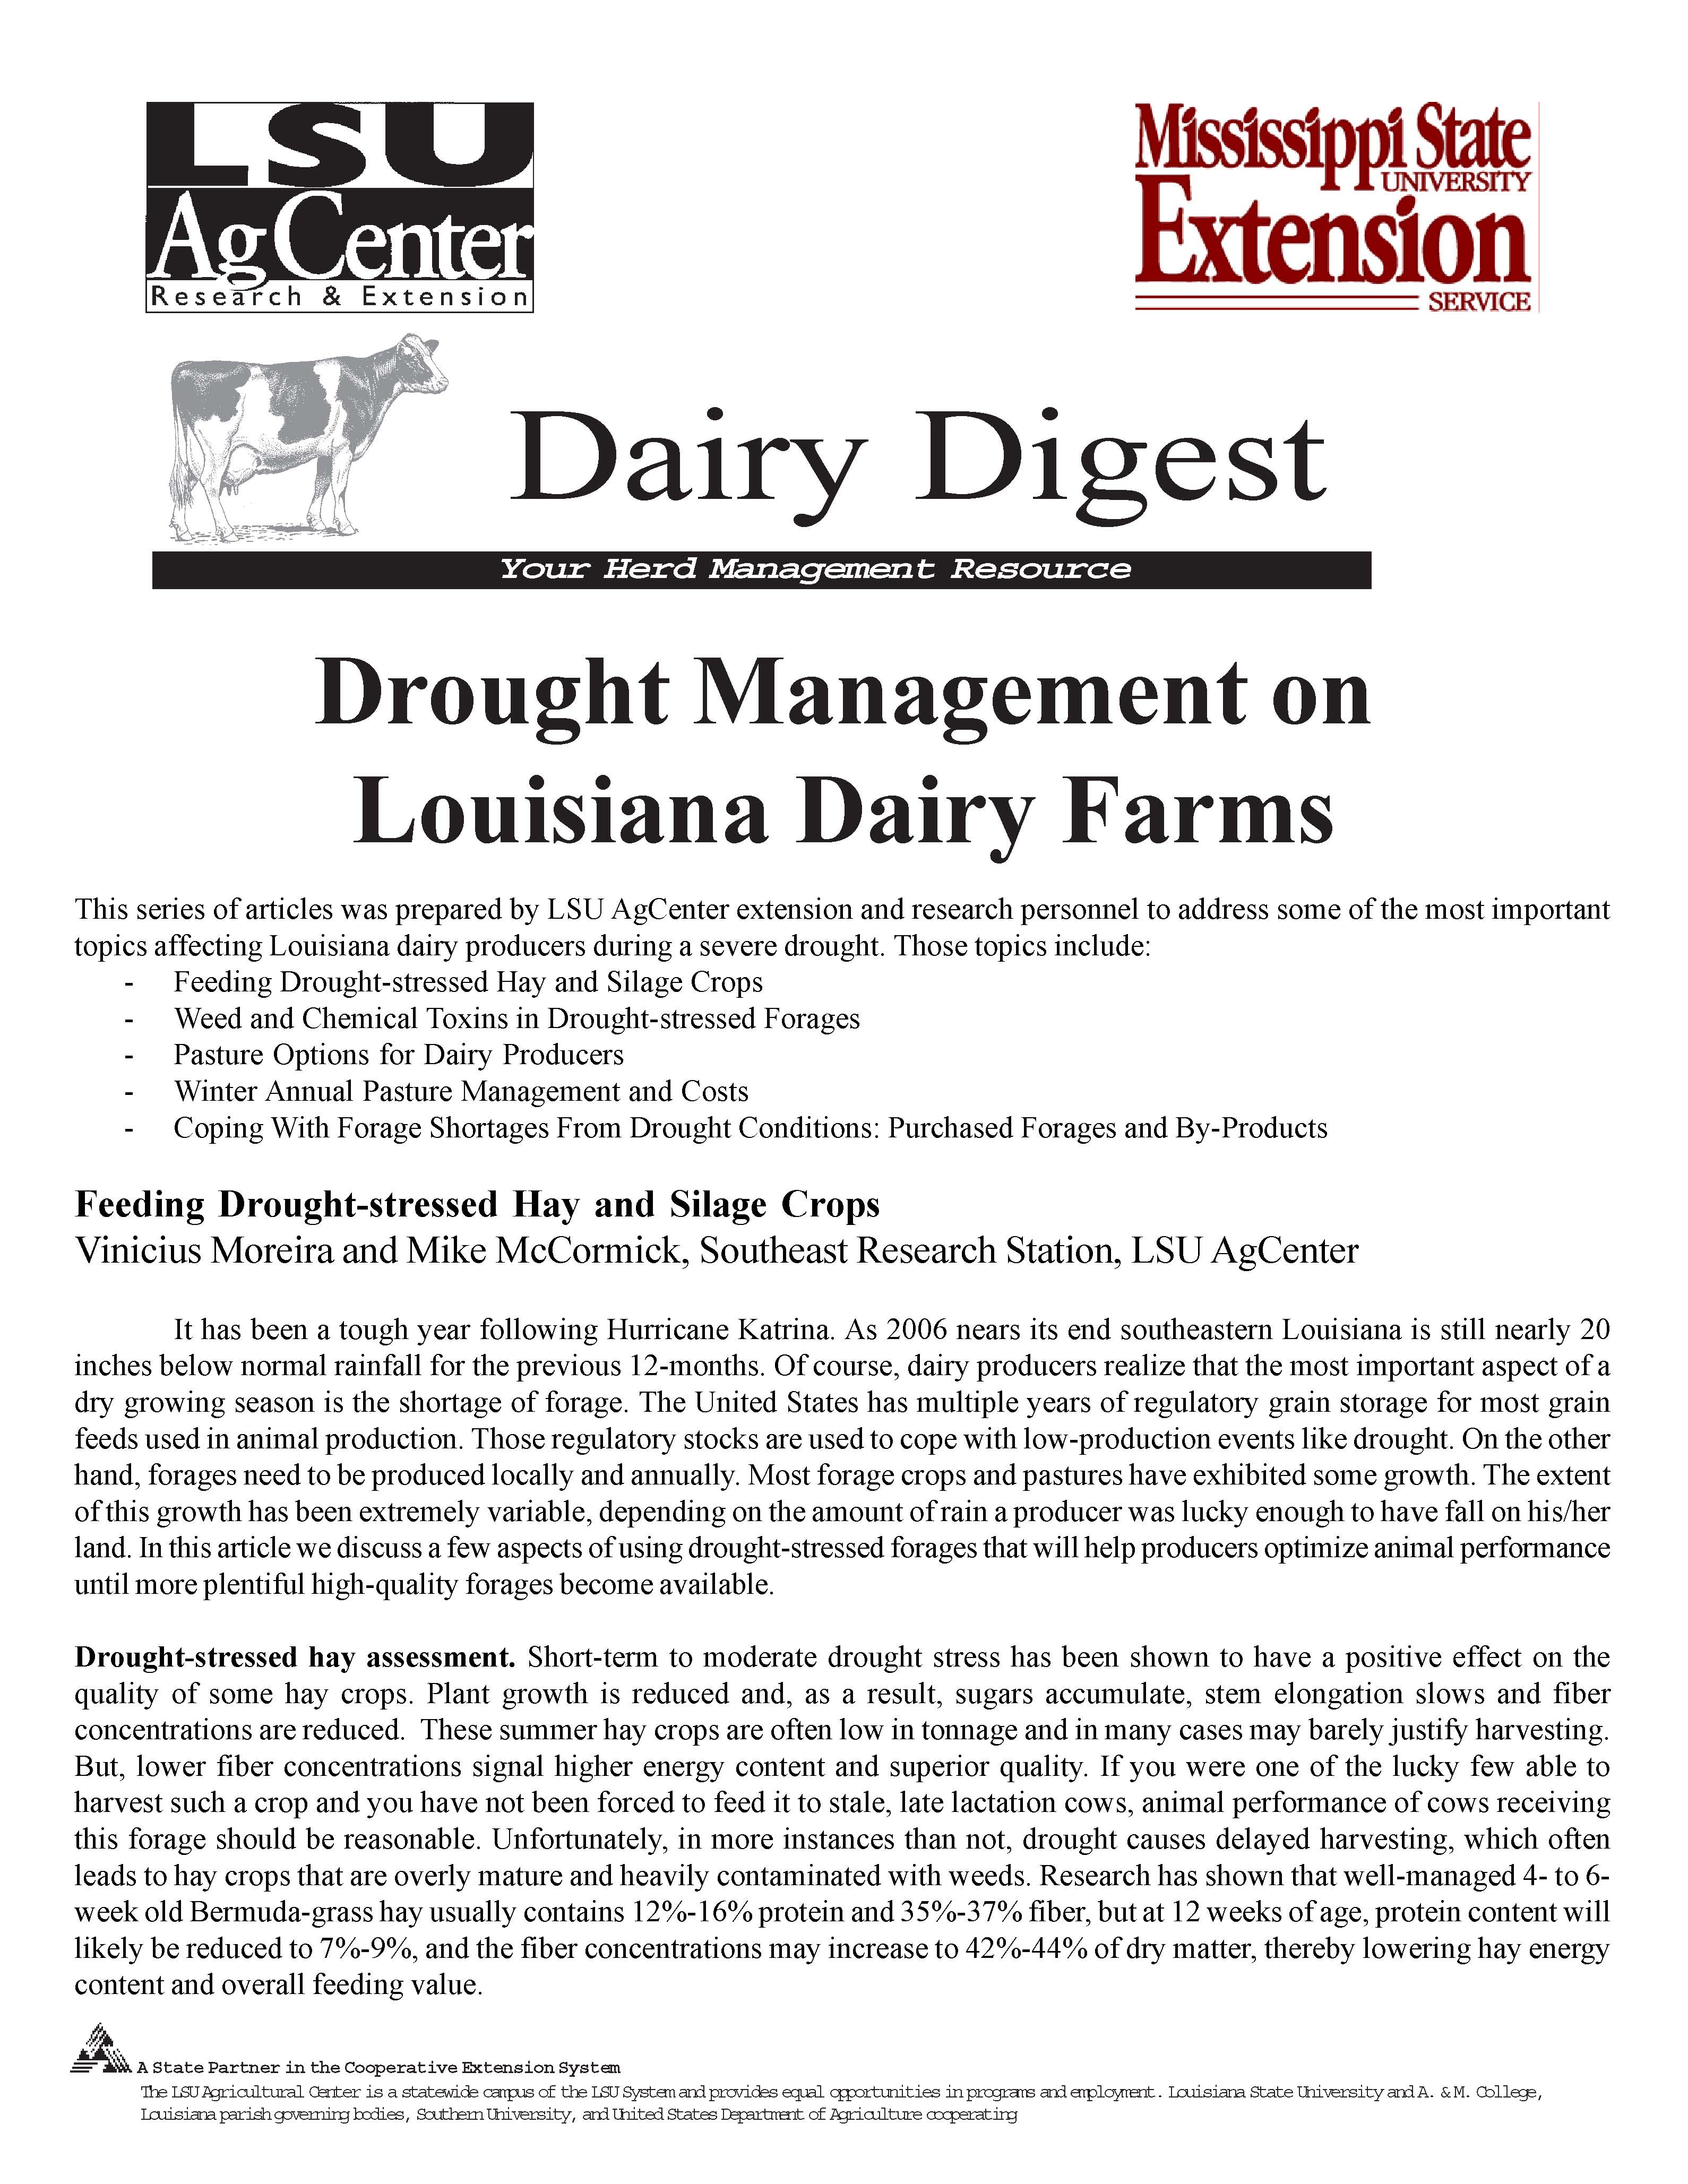 Drought Management on Louisiana Dairy Farms